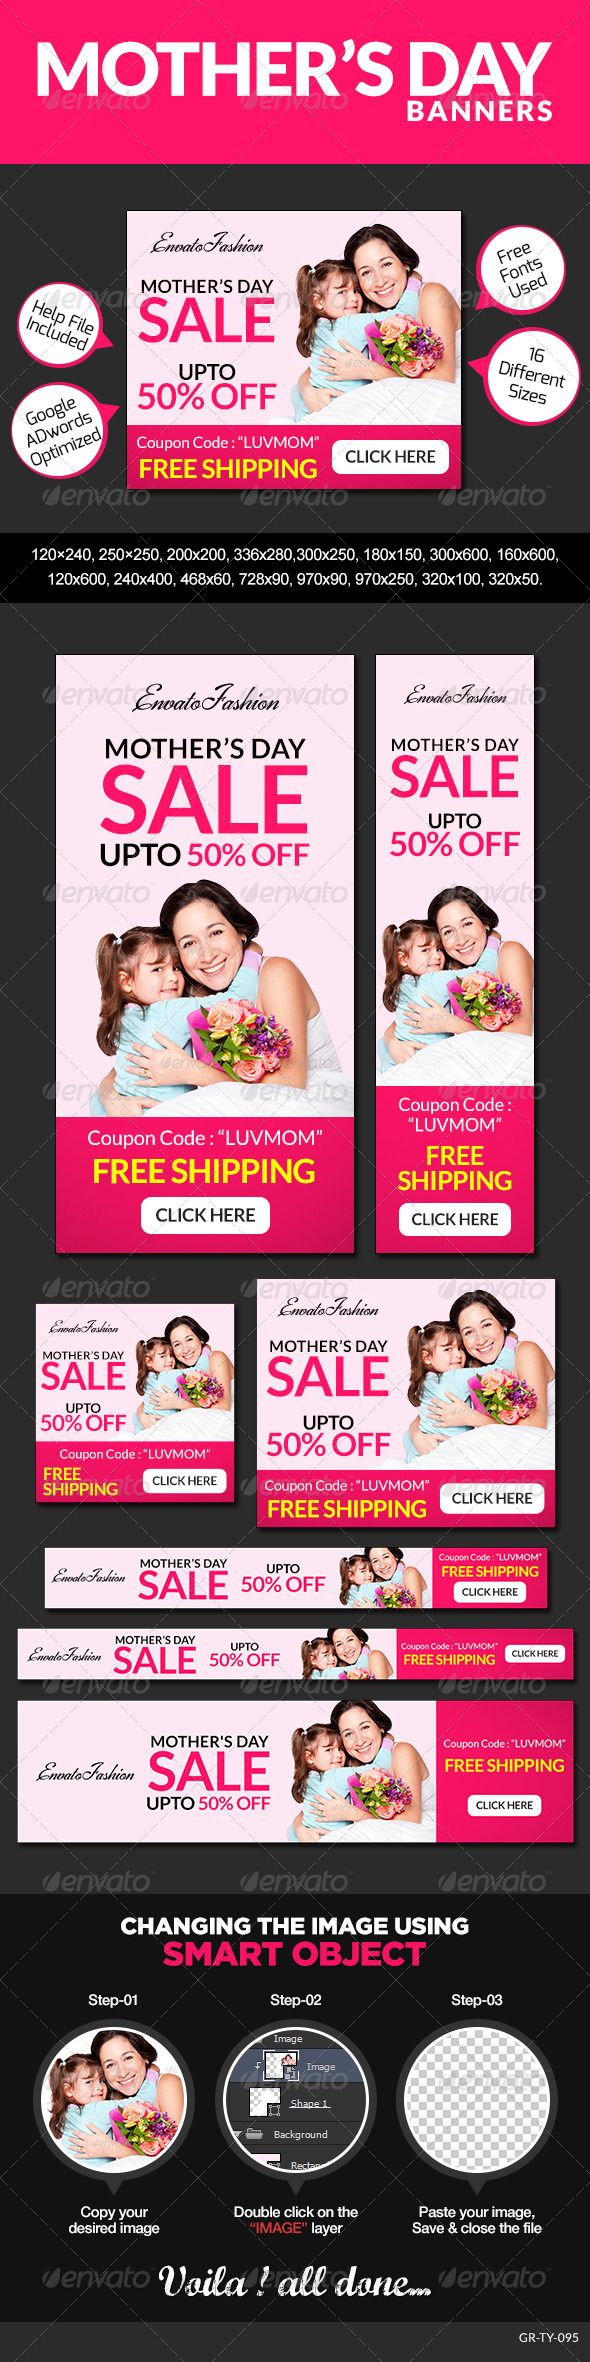 Mother's Day Banners Template PSD | Buy and Download: http://graphicriver.net/item/mothers-day-banners/8565653?WT.ac=category_thumb&WT.z_author=doto&ref=ksioks